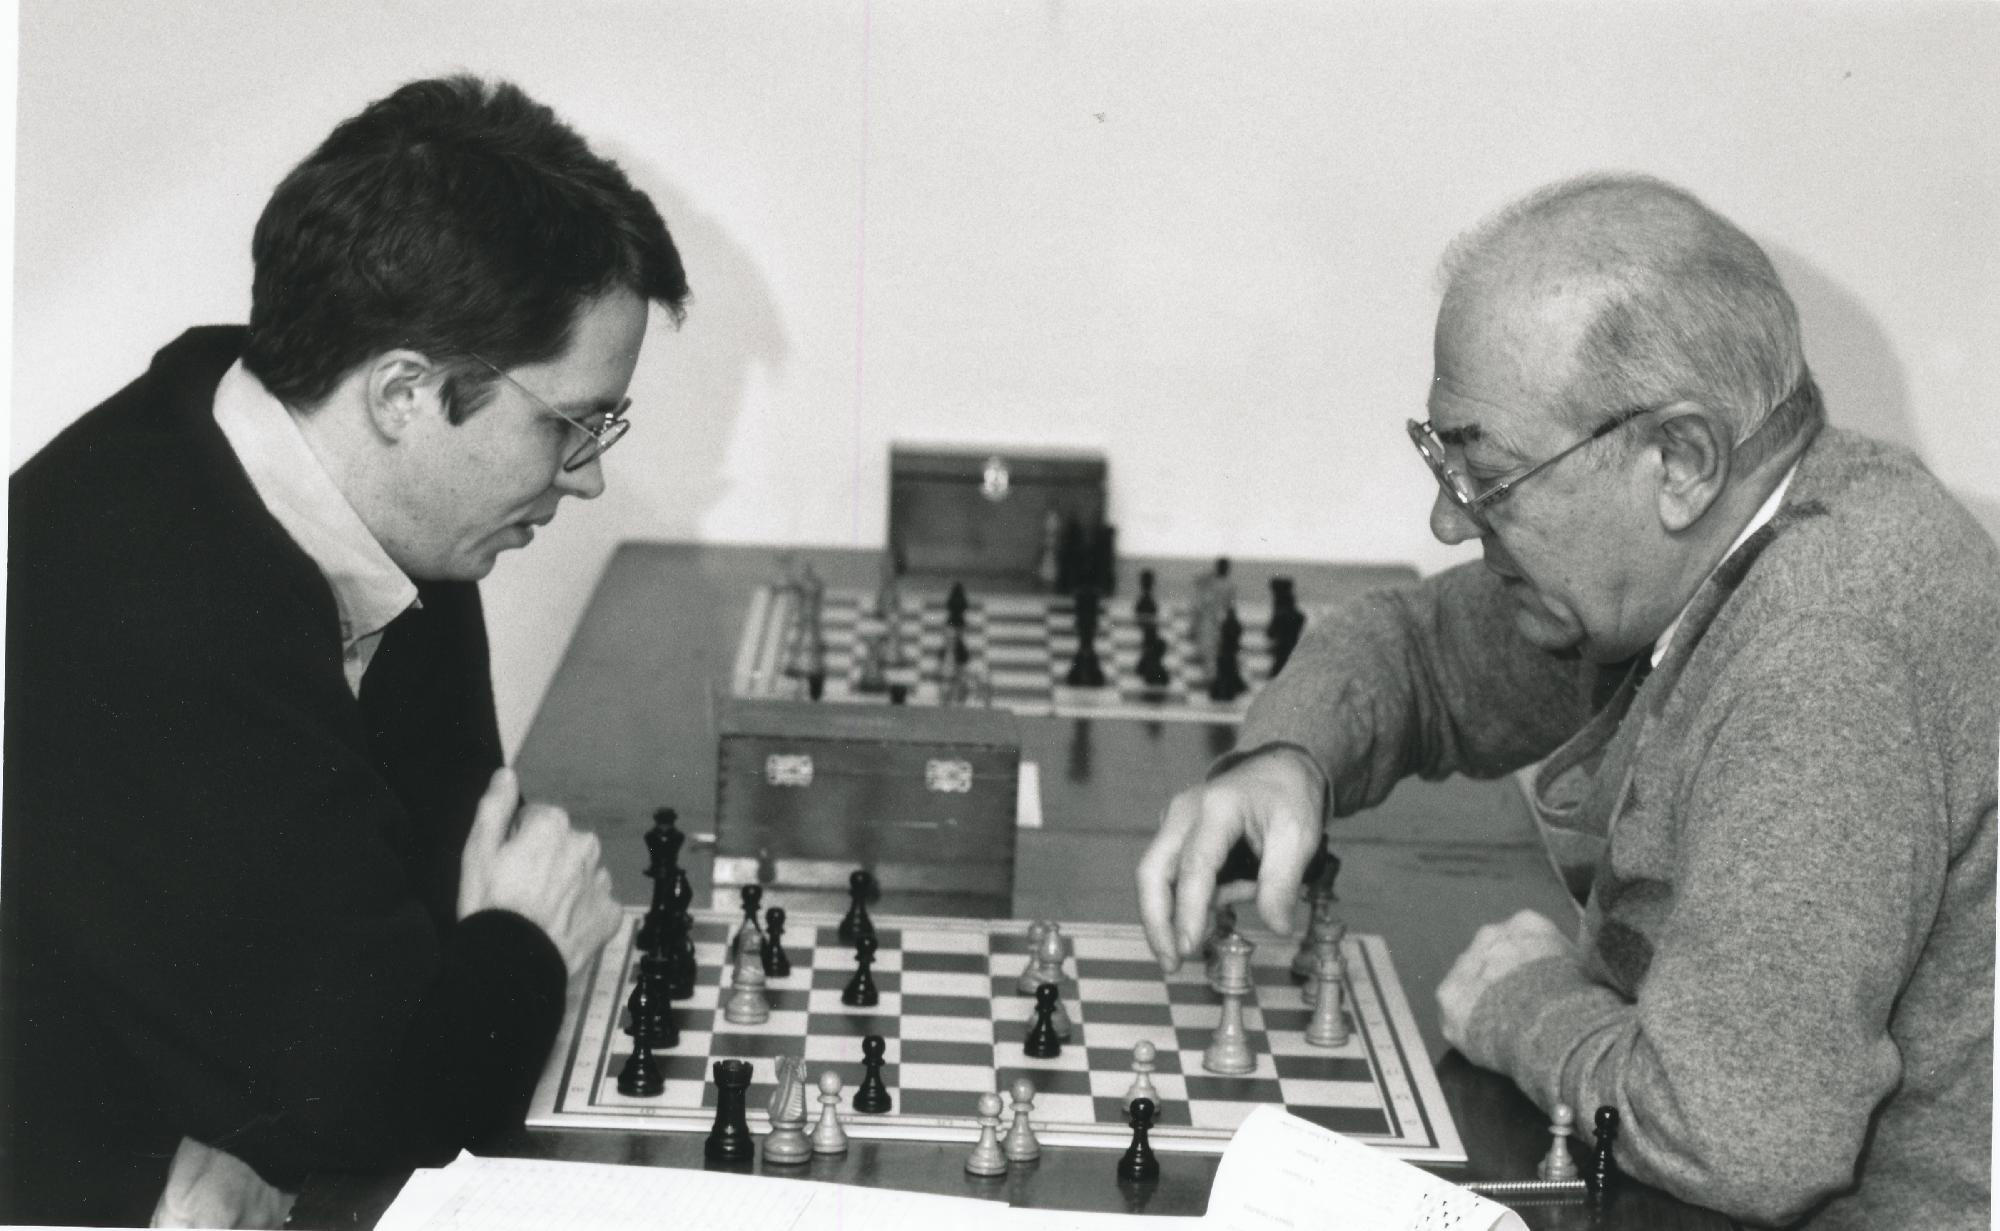 Nigel analyses with Viktor Korchnoi, unknown date and venue